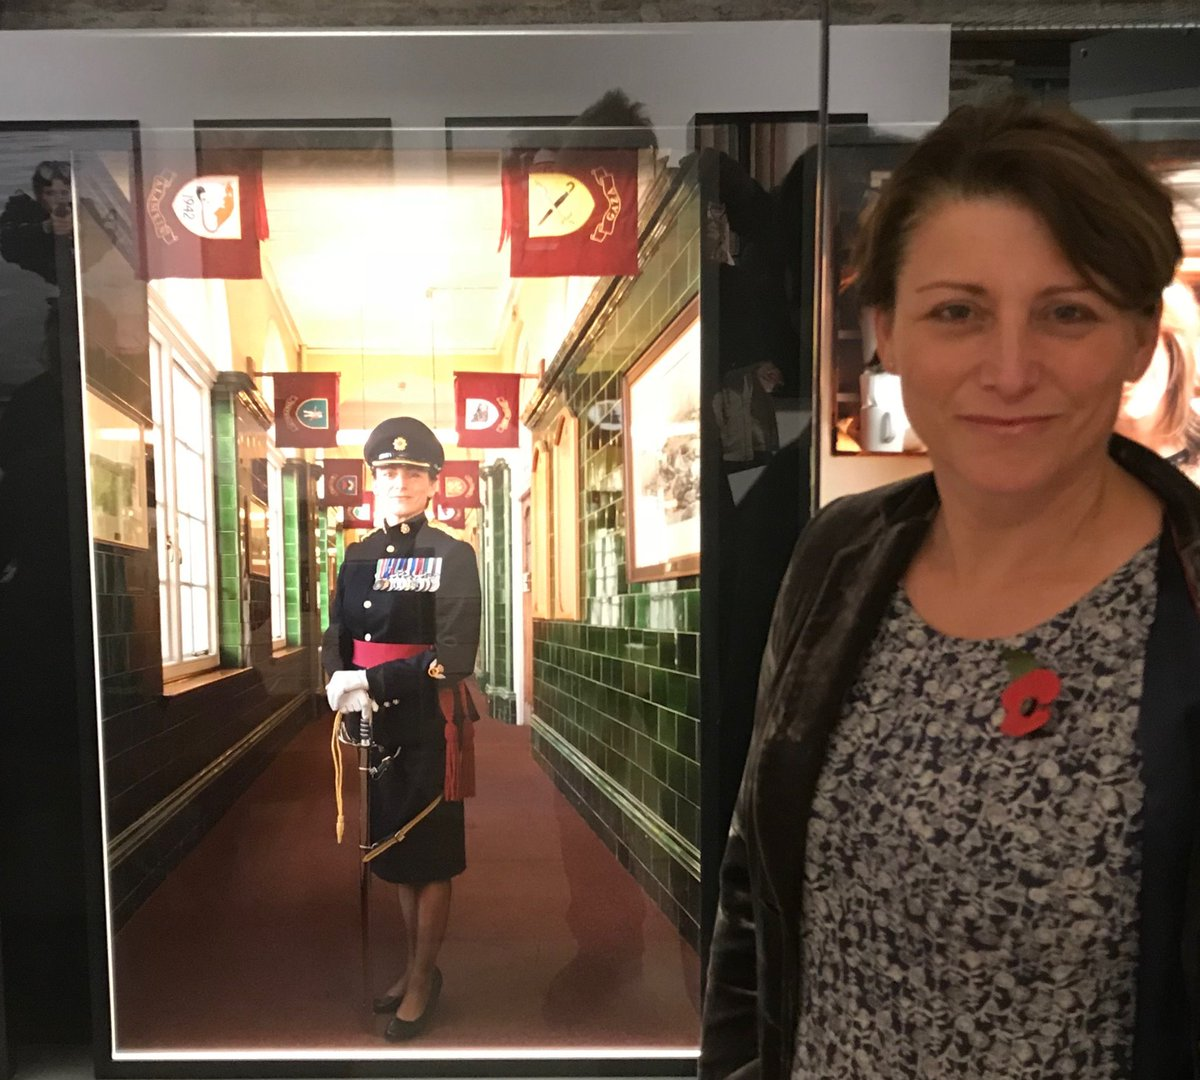 In 2015 Lieutenant Colonel Lucy Giles RLC was the first ever woman in British History to be made New College Commander at the Royal Military Academy Sandhurst @RMASandhurst Heres Lucy with her #portrait at the First Women #exhibition @foxtalbotmuseum @LacockNT #MondayMotivation